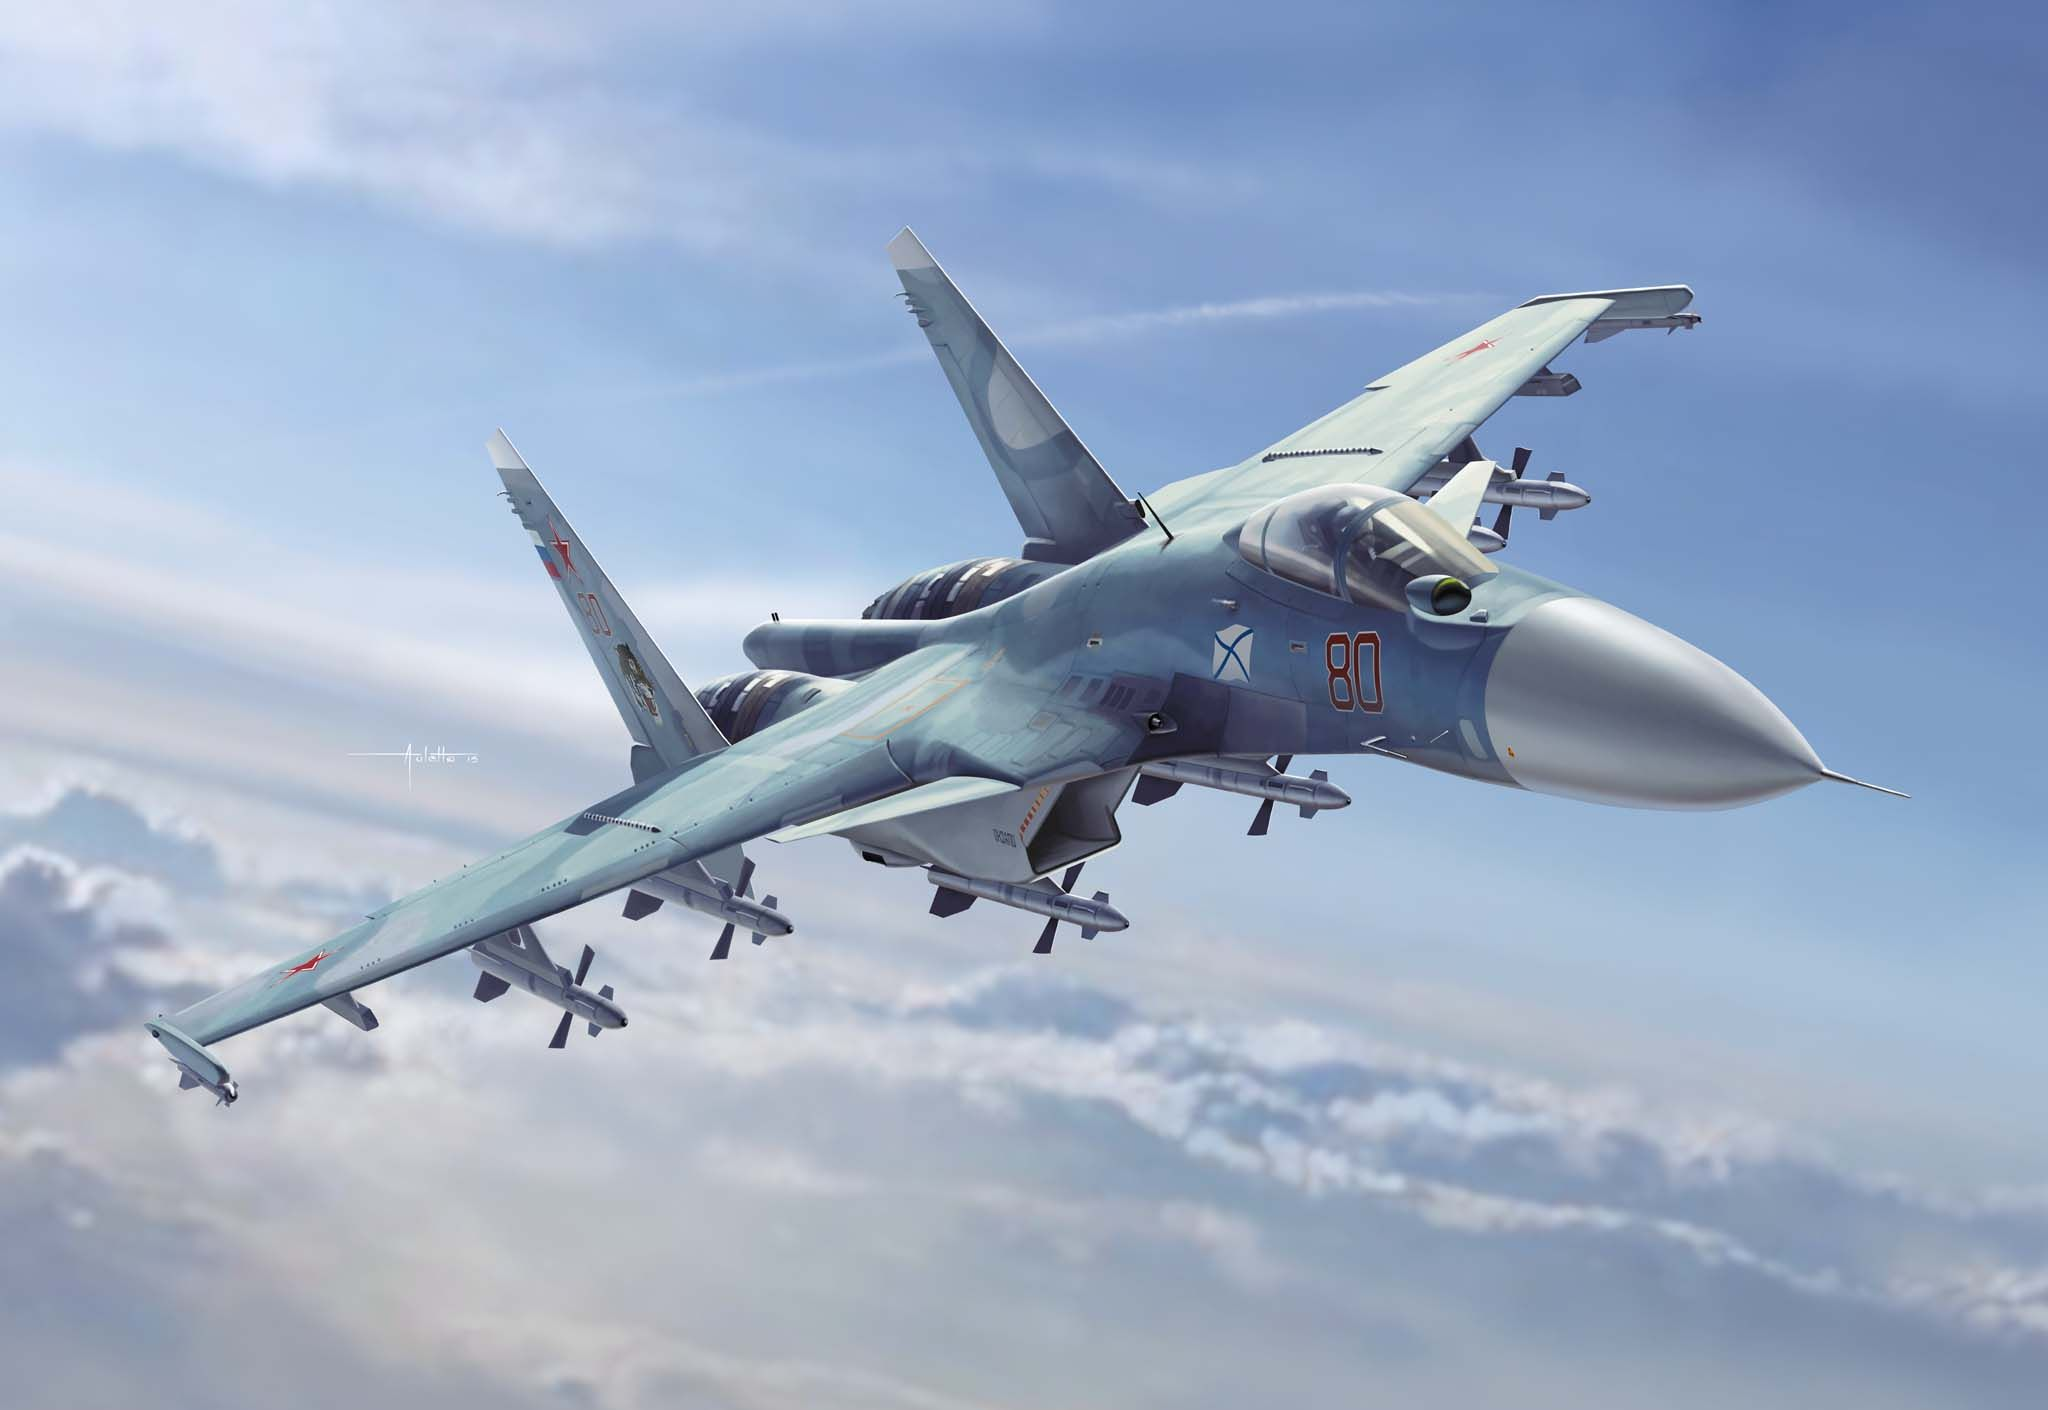 Loading su 33 flanker d carrier based fighter jet su 27 - Military Aircraft Sukhoi Su 33 Flanker D